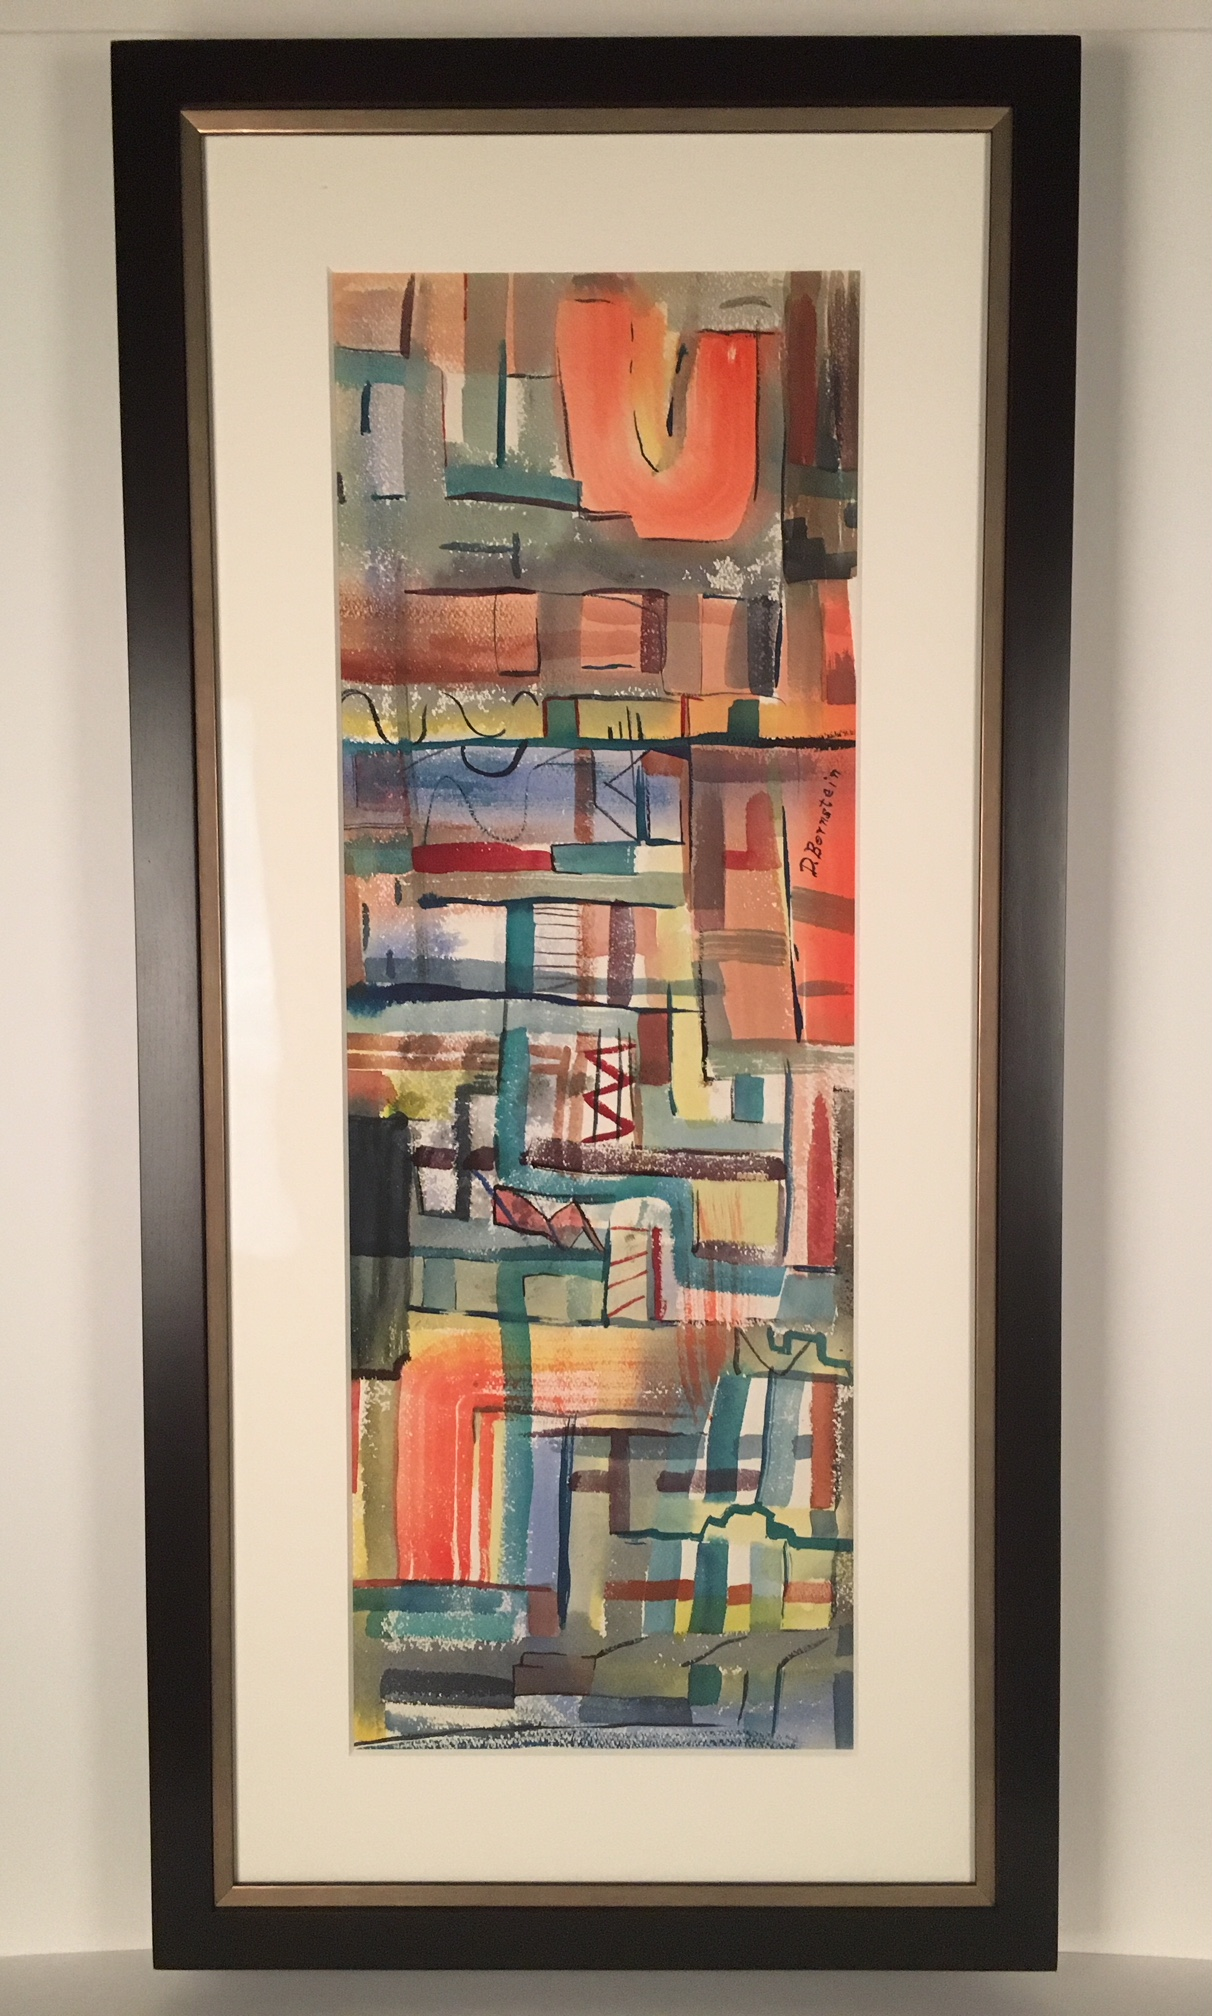 Mid-Century watercolor framed in dark wood frame with angled back sides.